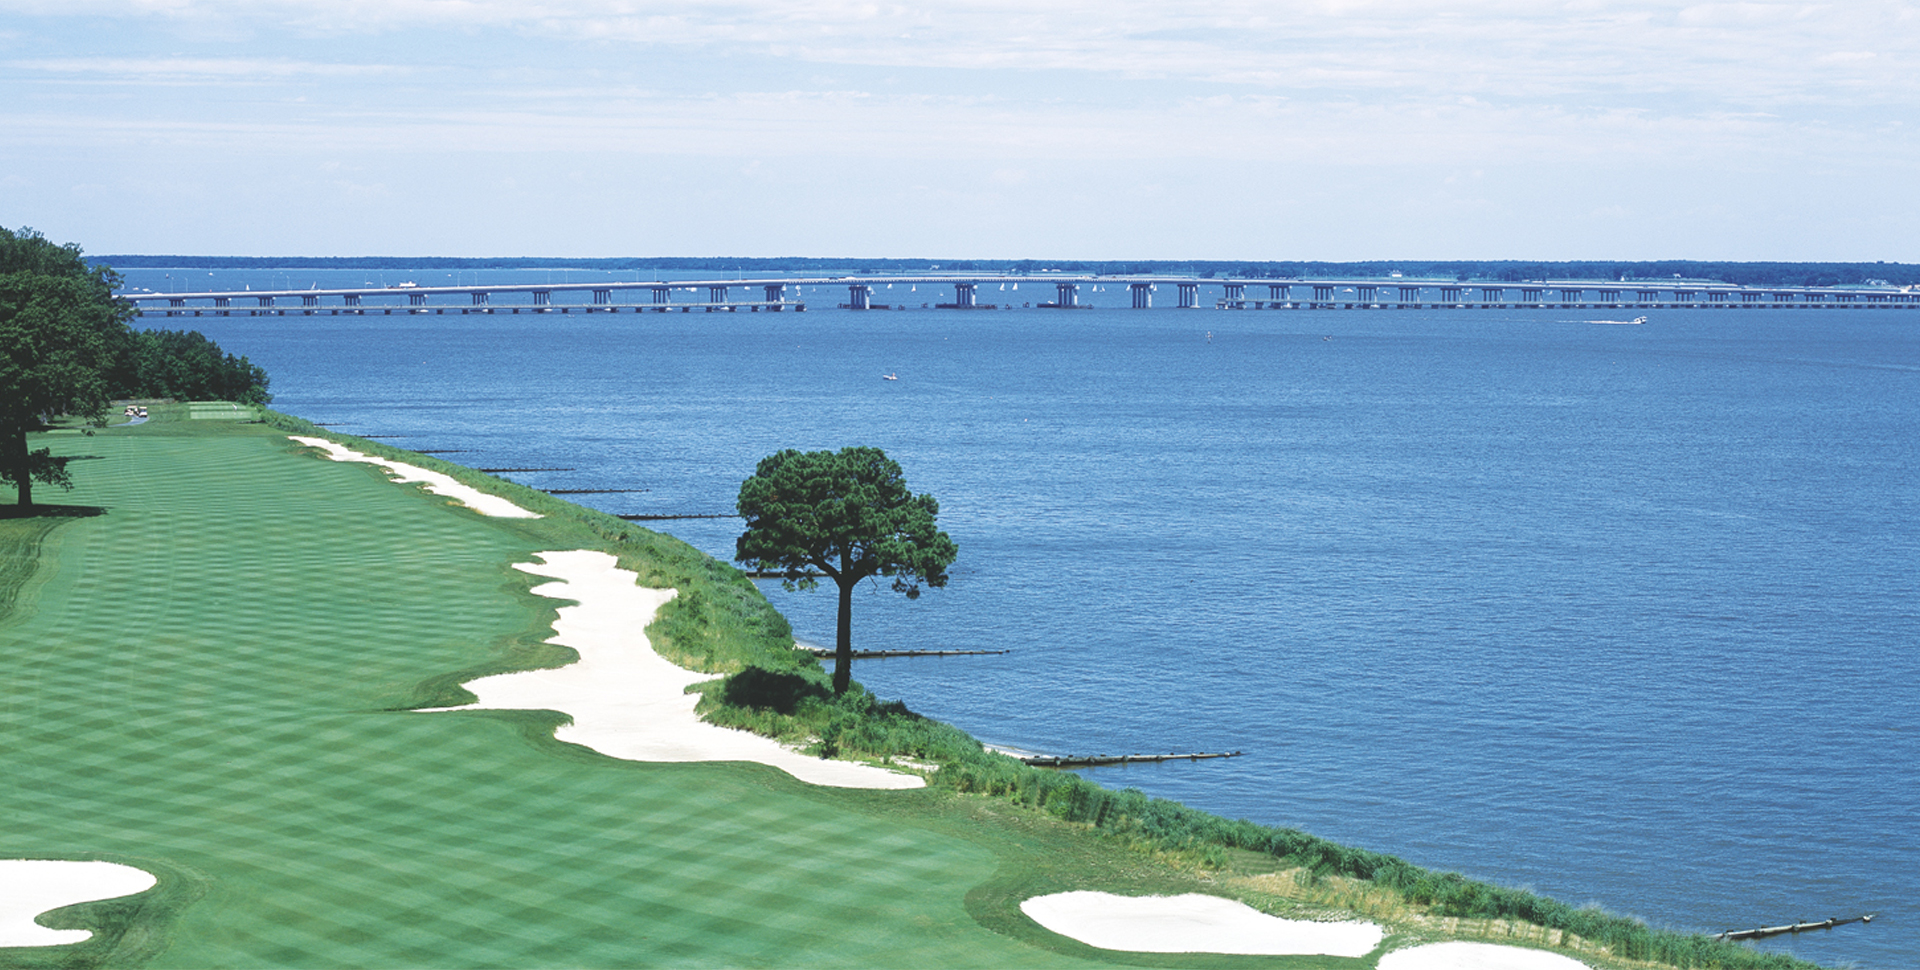 18 Holes of Eastern Shore Perfection